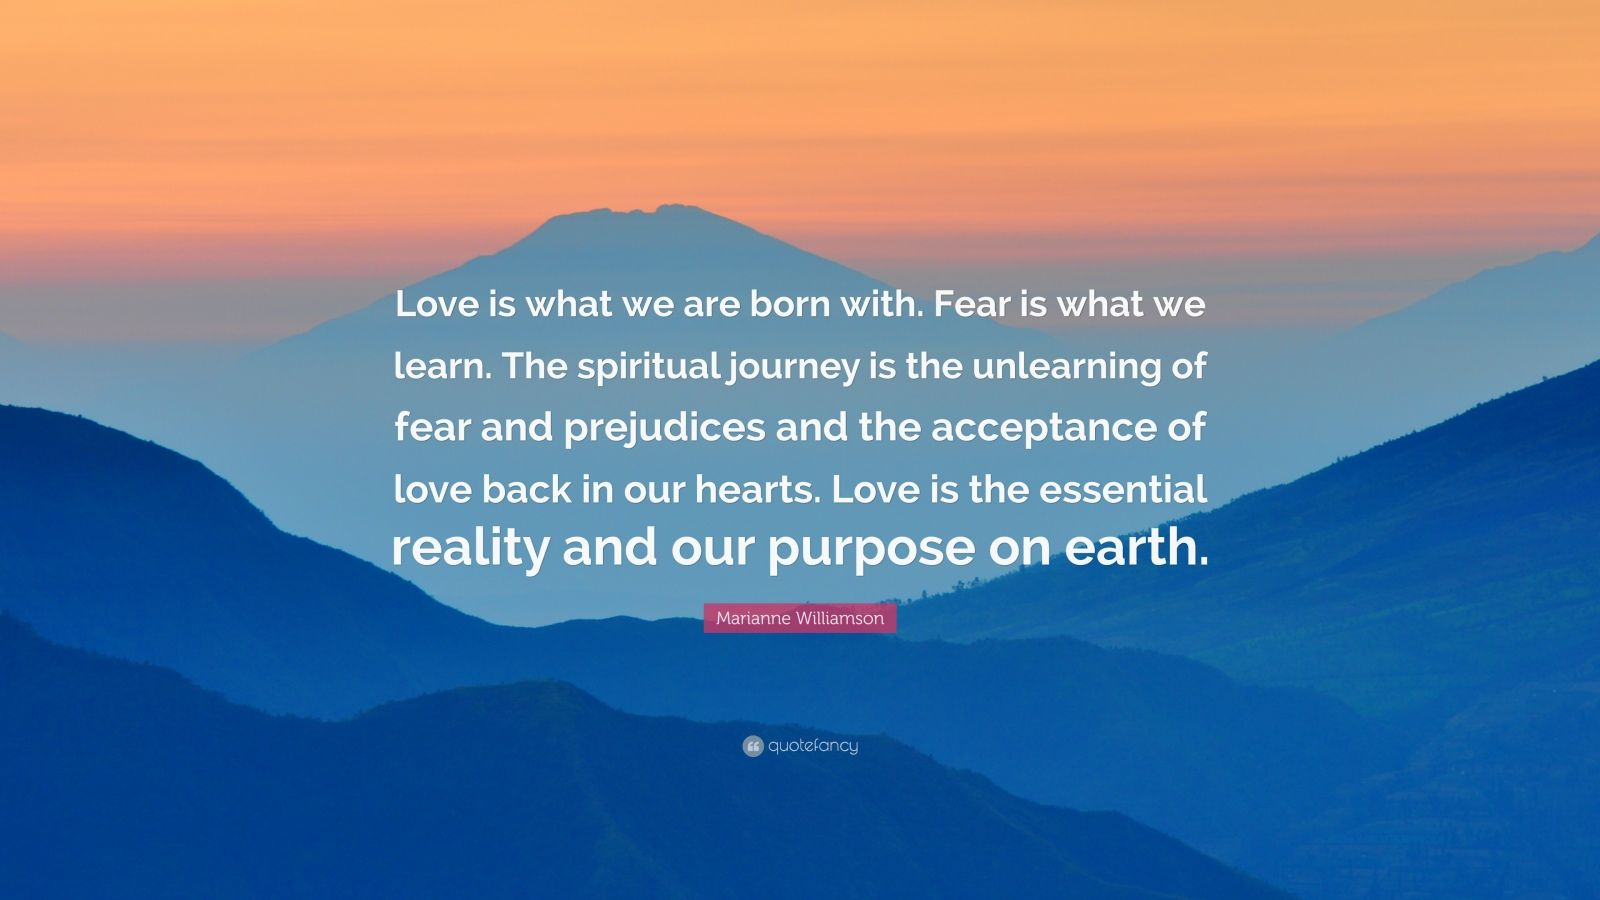 """Marianne Williamson Quote: """"Love is what we are born with. Fear is what we learn. The spiritual journey is the unlearning of fear and prejudices and the acceptance of love back in our hearts. Love is the essential reality and our purpose on earth."""""""